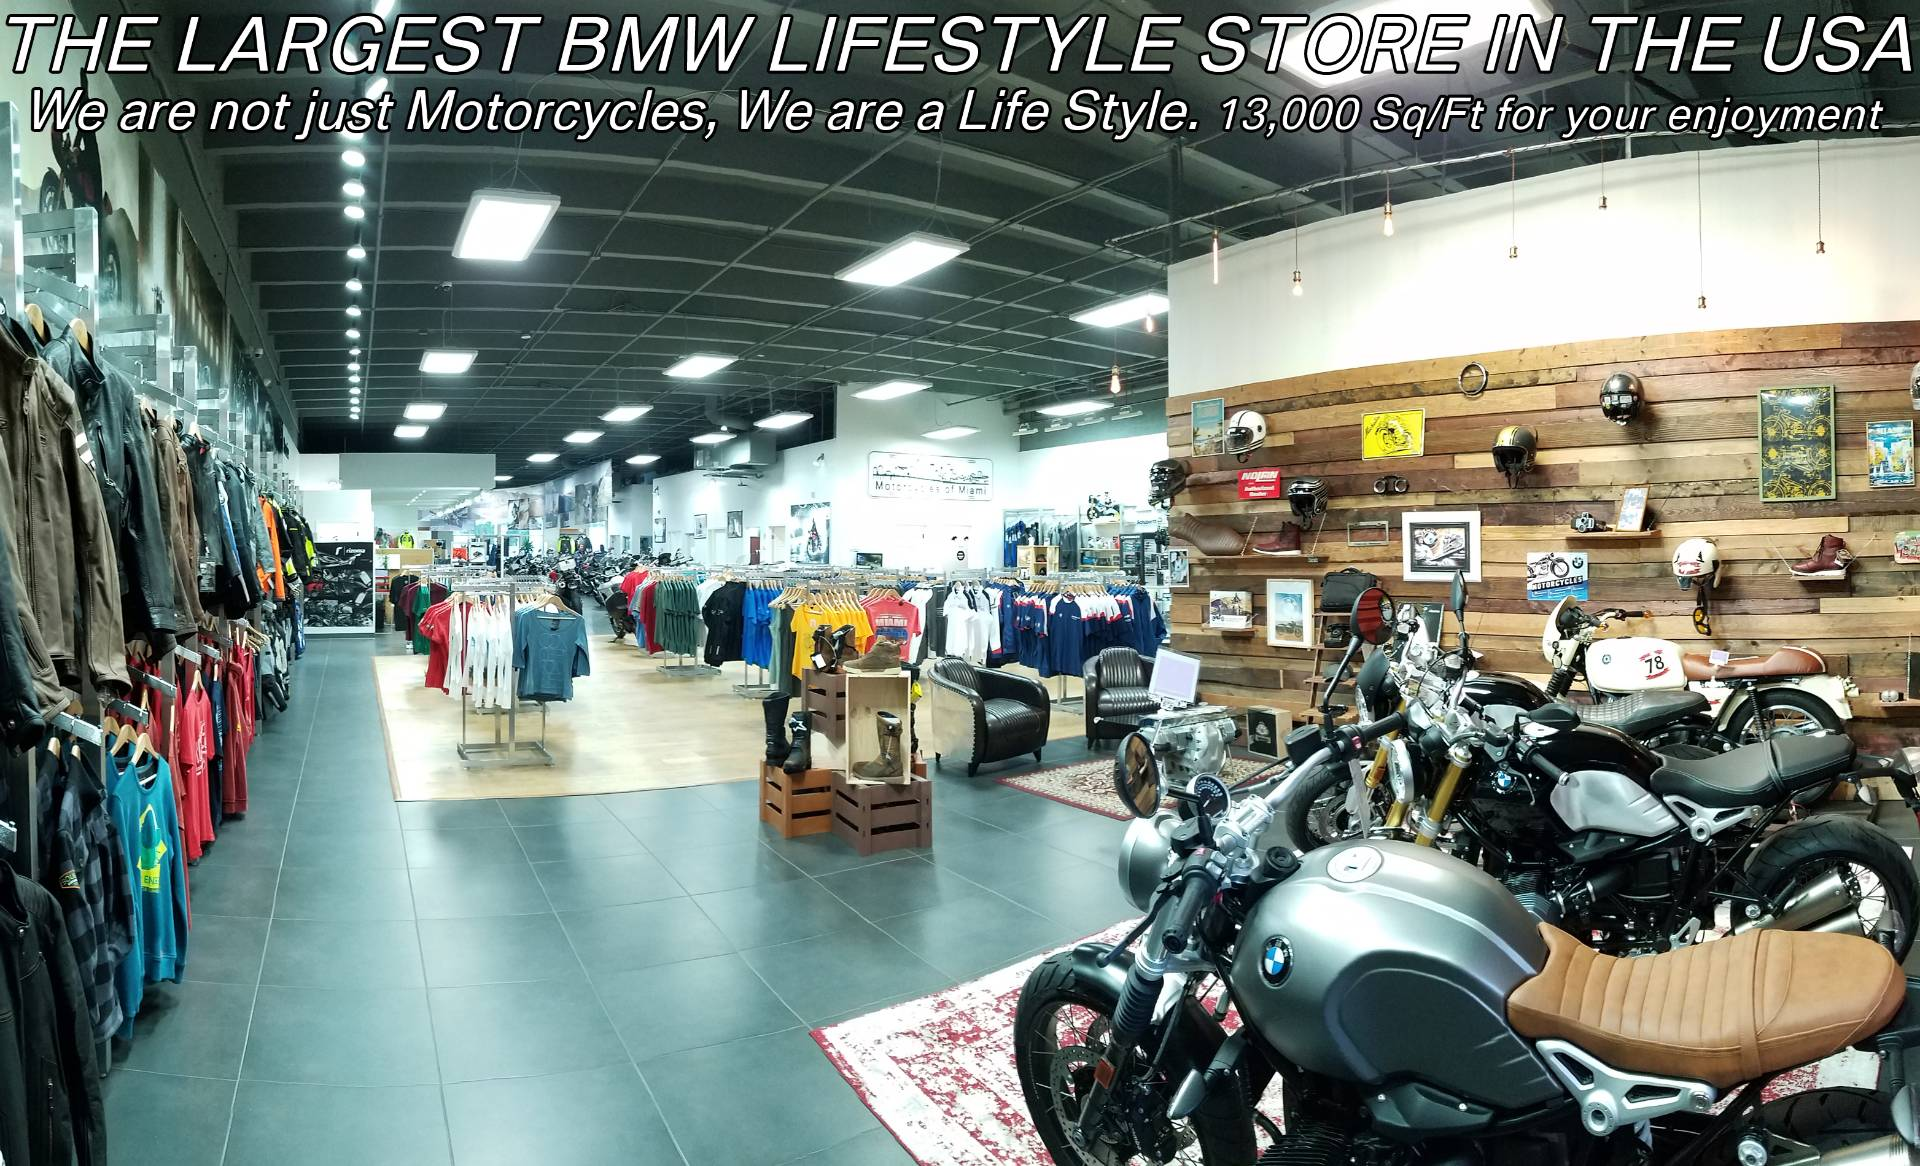 New 2019 BMW R 1250 GS for sale, BMW R 1250GS for sale, BMW Motorcycle GS, new BMW GS, Spirit of GS, BMW Motorcycles of Miami, Motorcycles of Miami, Motorcycles Miami, New Motorcycles, Used Motorcycles, pre-owned. #BMWMotorcyclesOfMiami #MotorcyclesOfMiami. - Photo 34